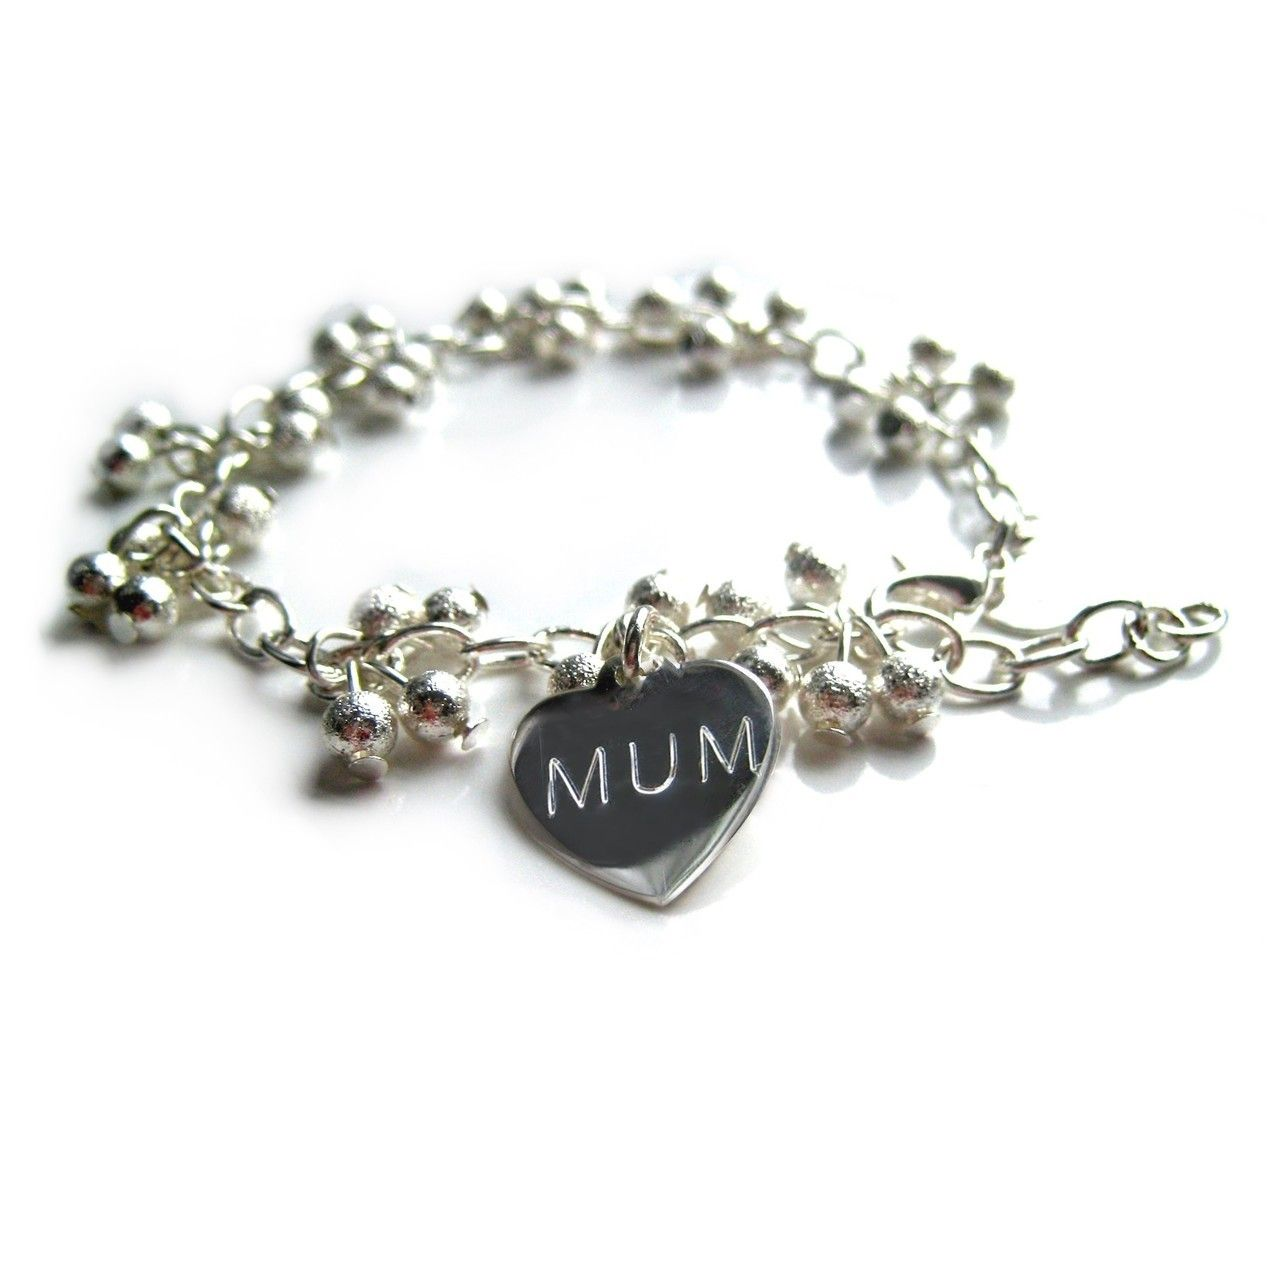 Aye Do Ltd - Shimmer Ball Personalised Bracelet (yd), £29.99 (http://www.ayedoweddings.co.uk/shimmer-ball-bracelet-yd/)